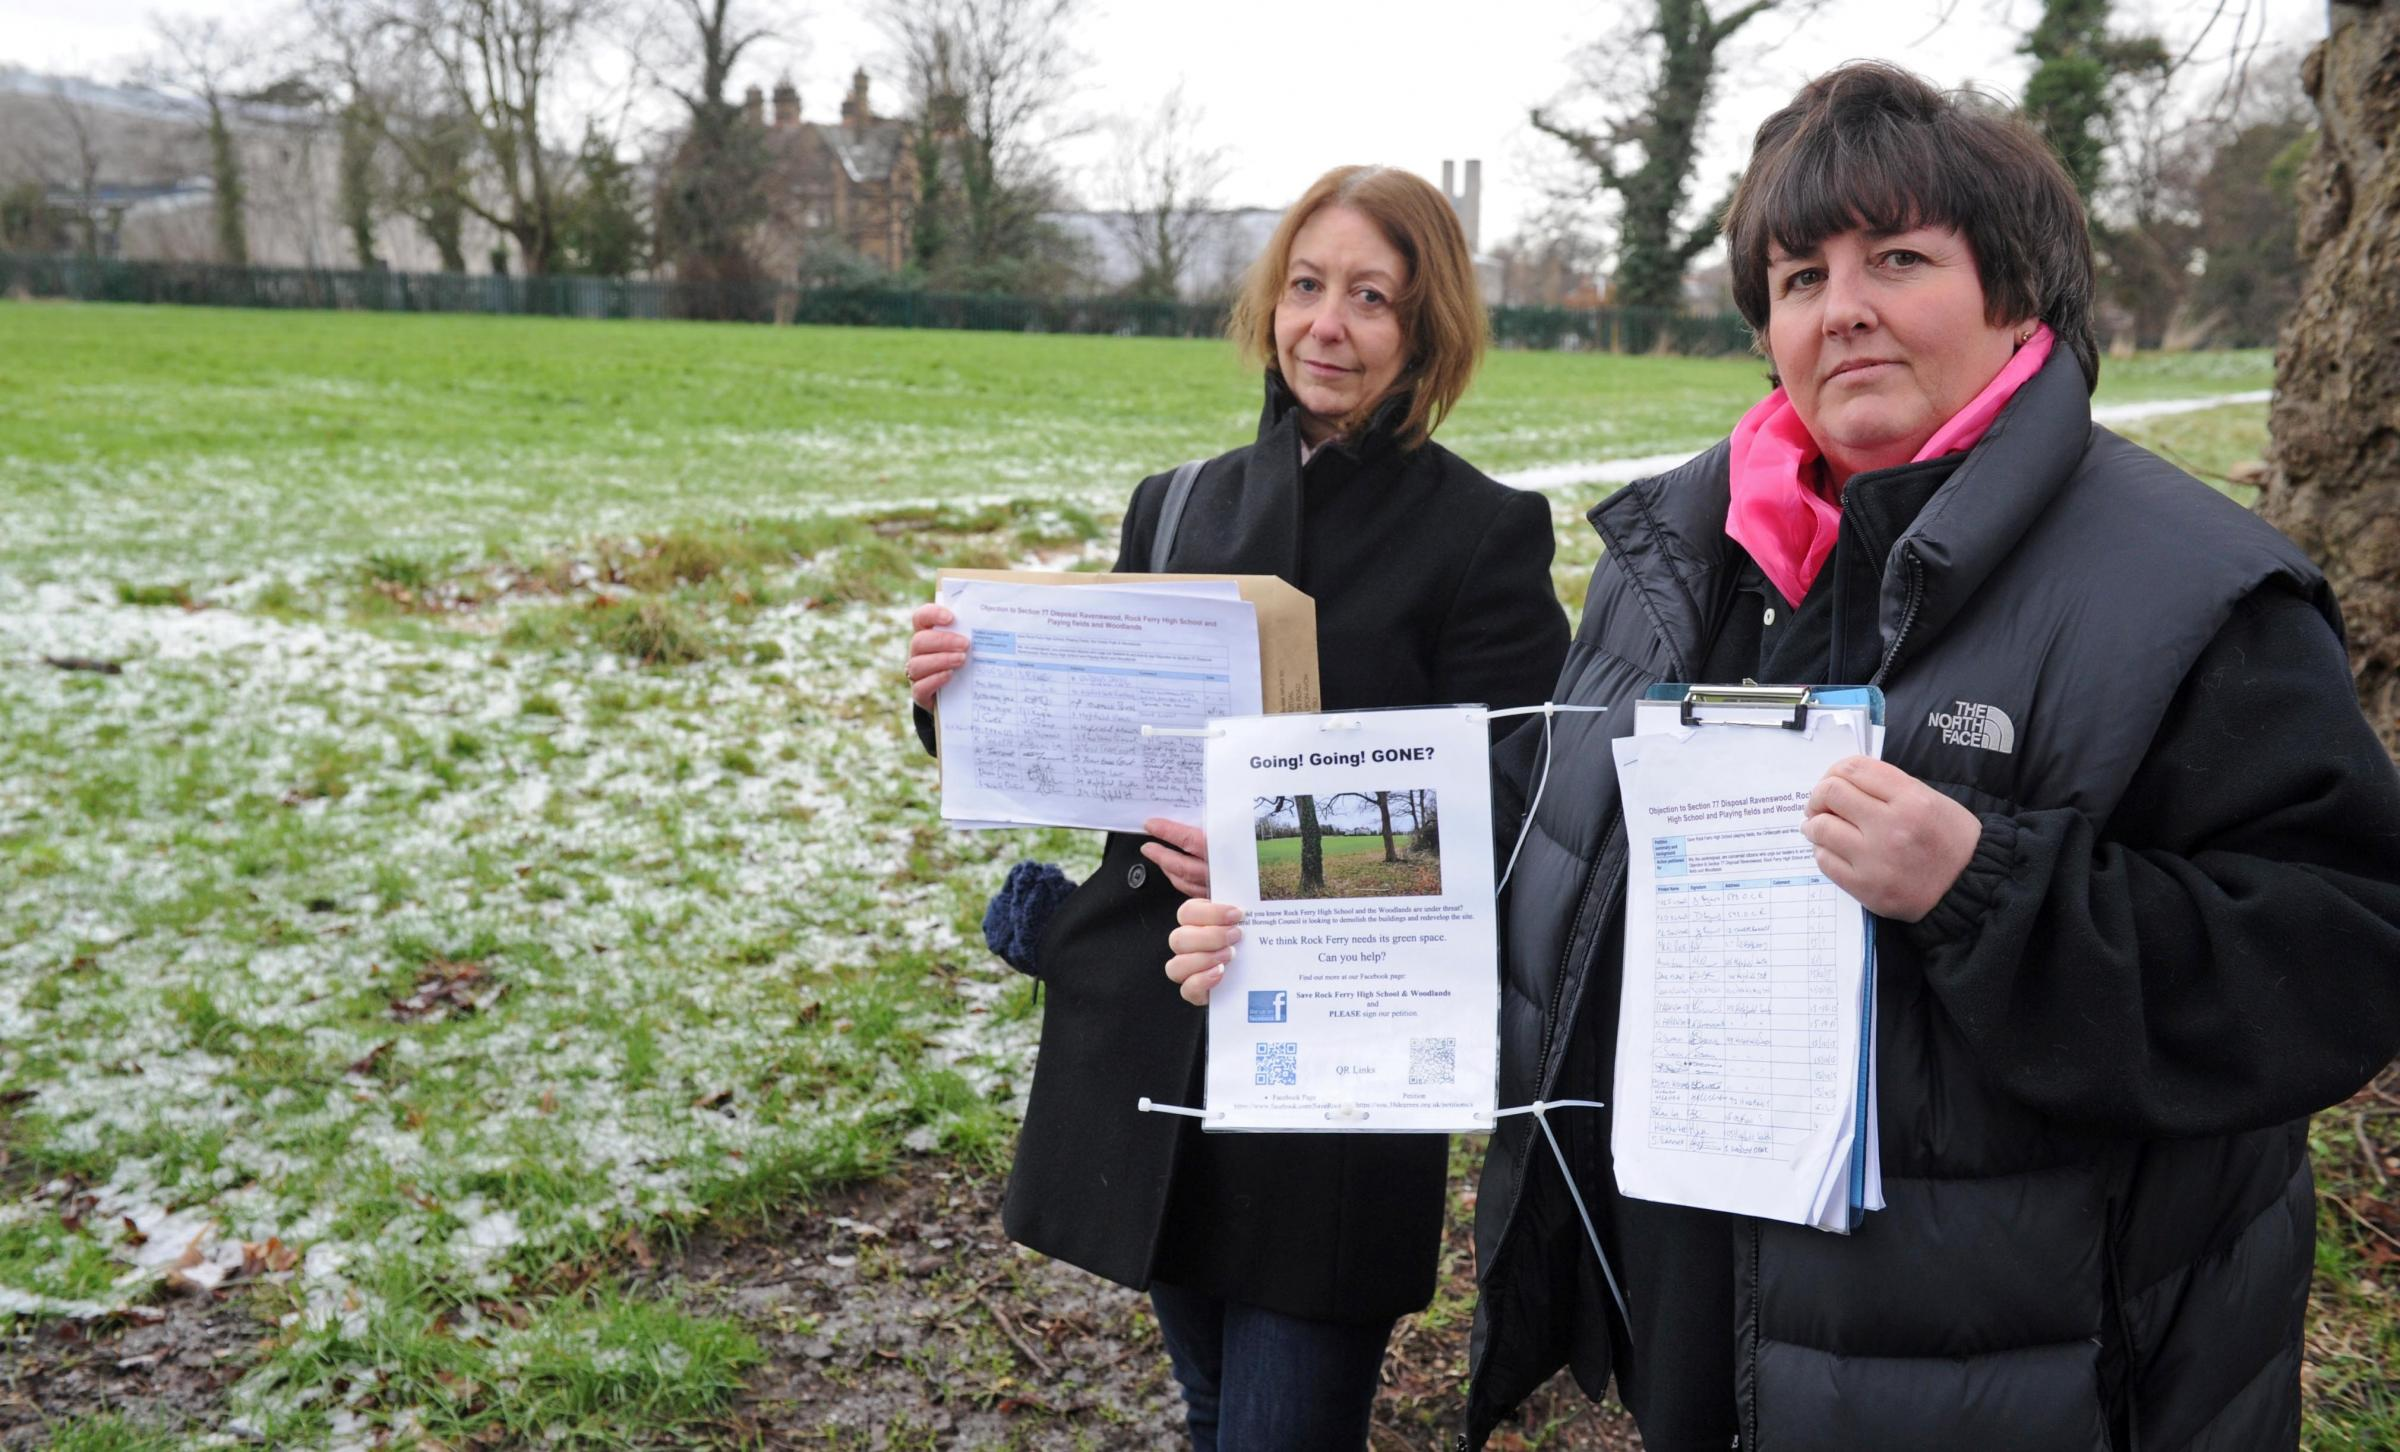 Campaigners Sue Dodd and Alison Meehan at the former Rock Ferry High School site. Picture: Paul Heaps.